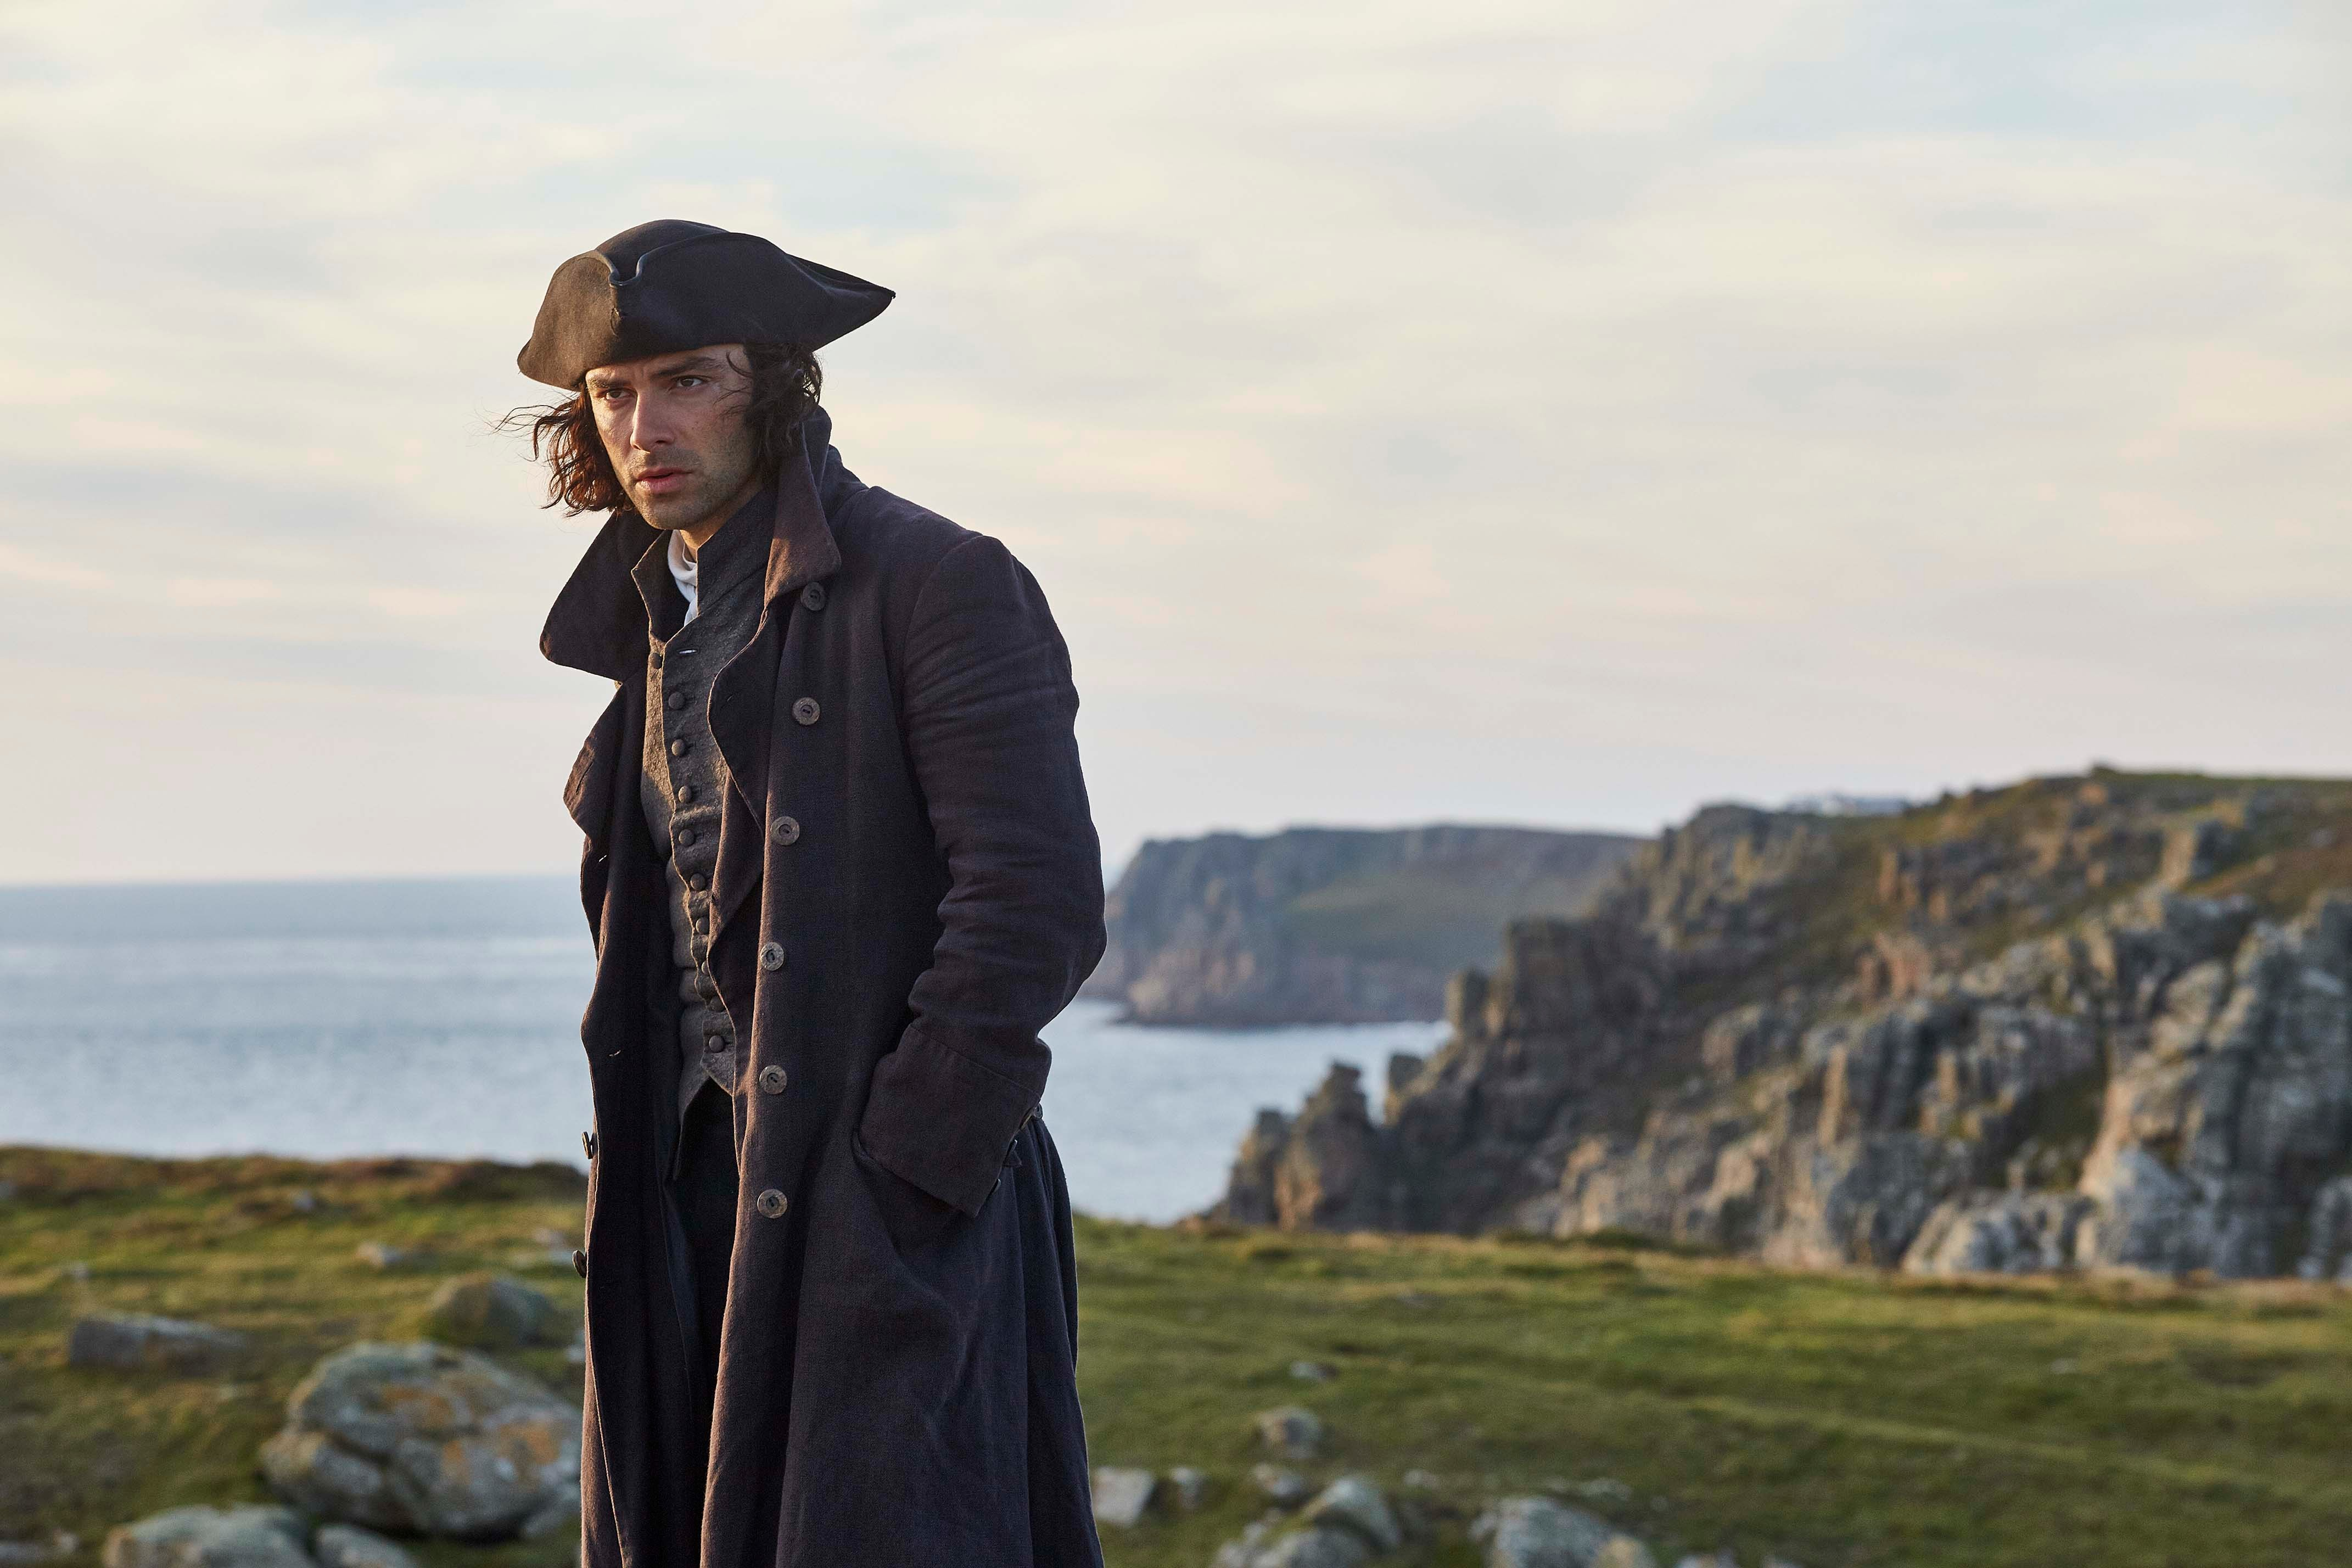 """Aidan Turner as Ross Poldark. The BBC television drama is putting Cornwall's coastline at risk of """"over-tourism"""" as visitors flock to the area to visit the show's scenic filming locations, tourism chiefs have warned. (Photo by BBC/Mammoth Screen/Mike Hogan)"""